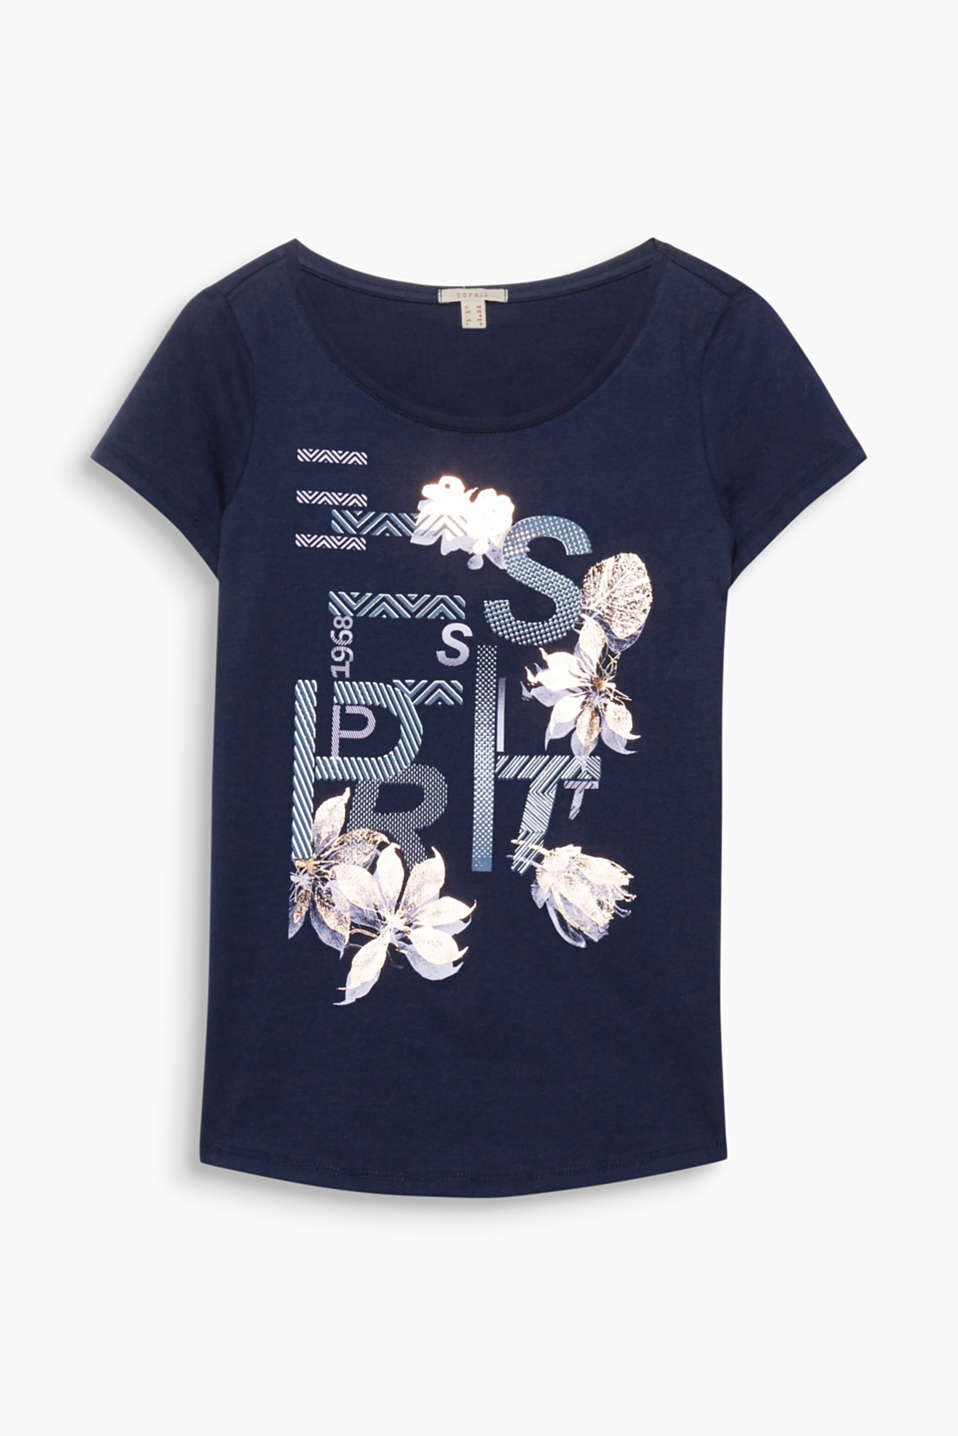 A current logo print meets glittering flowers - a decorative make-over for this soft, pure cotton T-shirt!